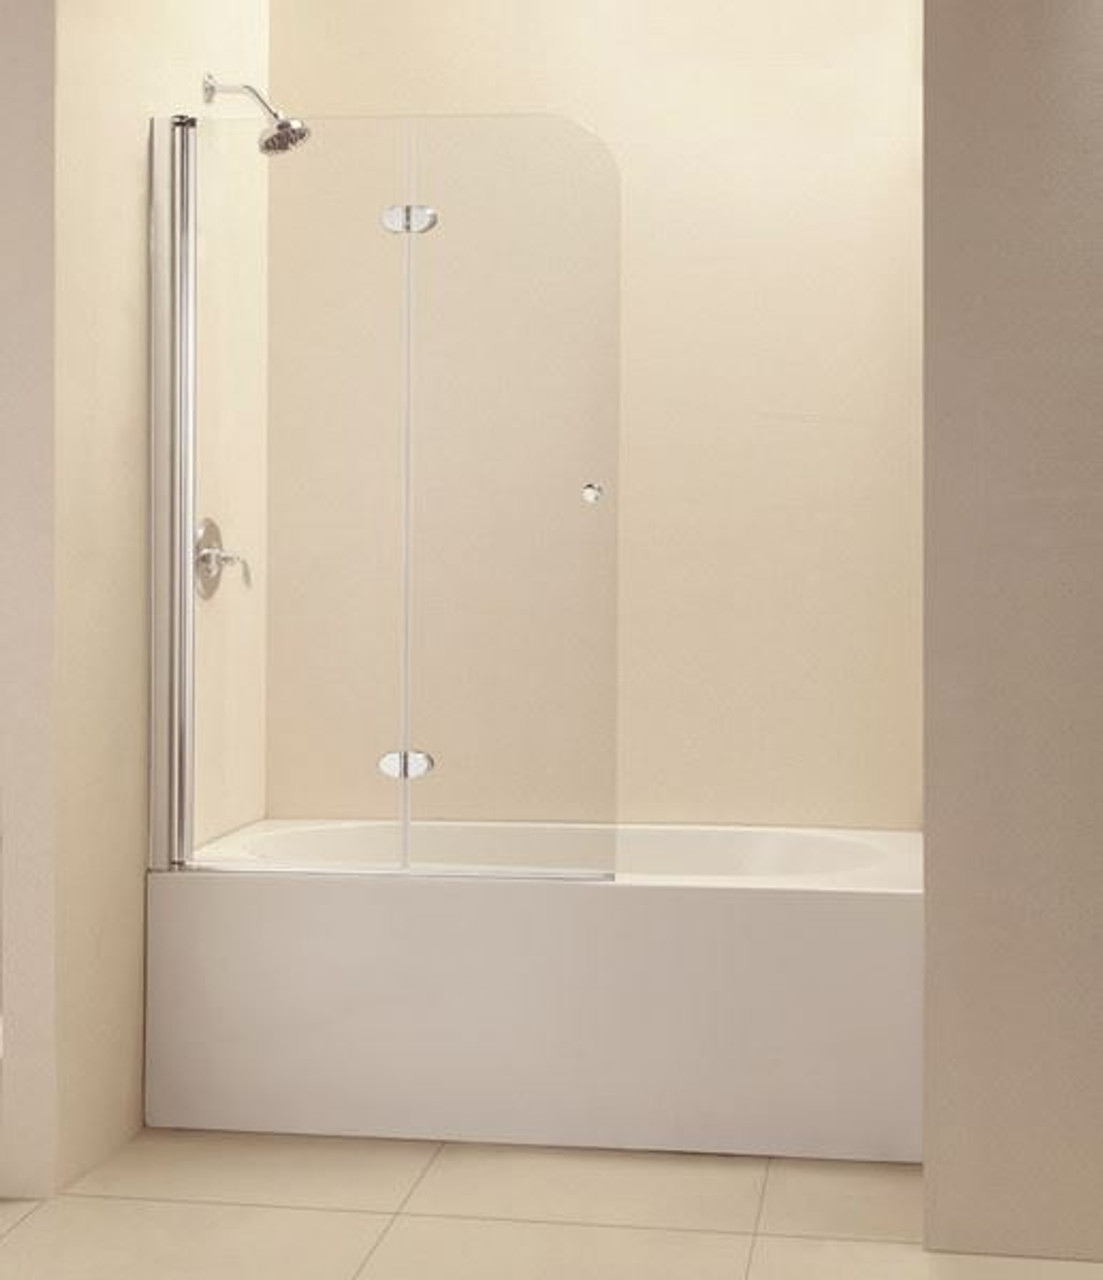 aquafold bathtub door folding bathtub door shdr3636580